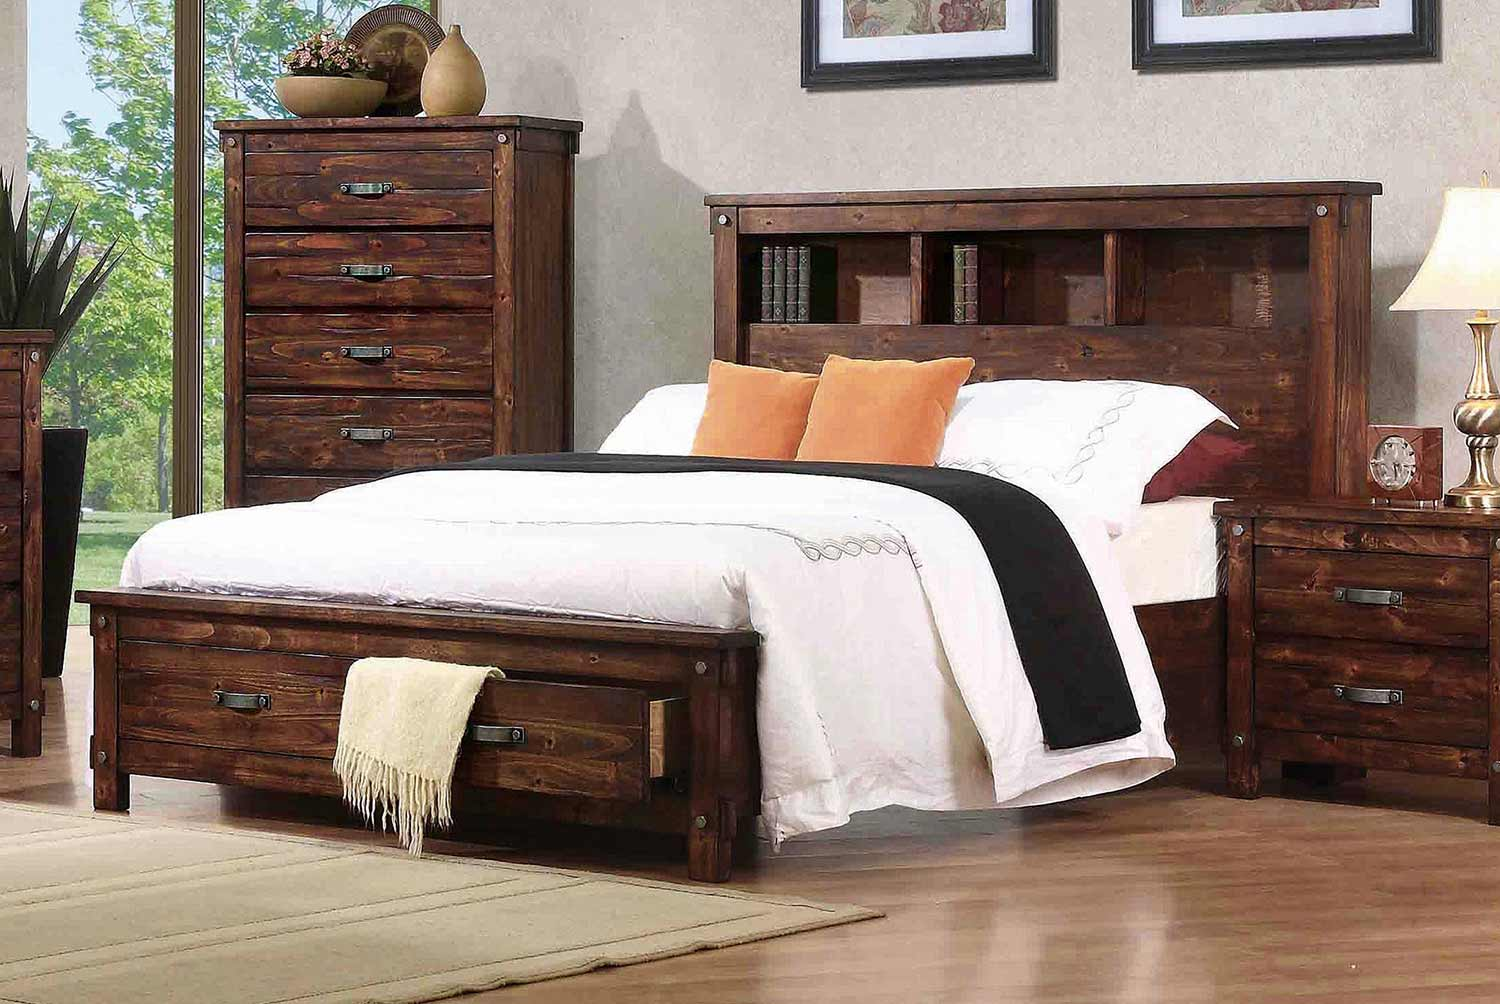 Coaster Noble Bookcase Platform Storage Bed - Rustic Oak